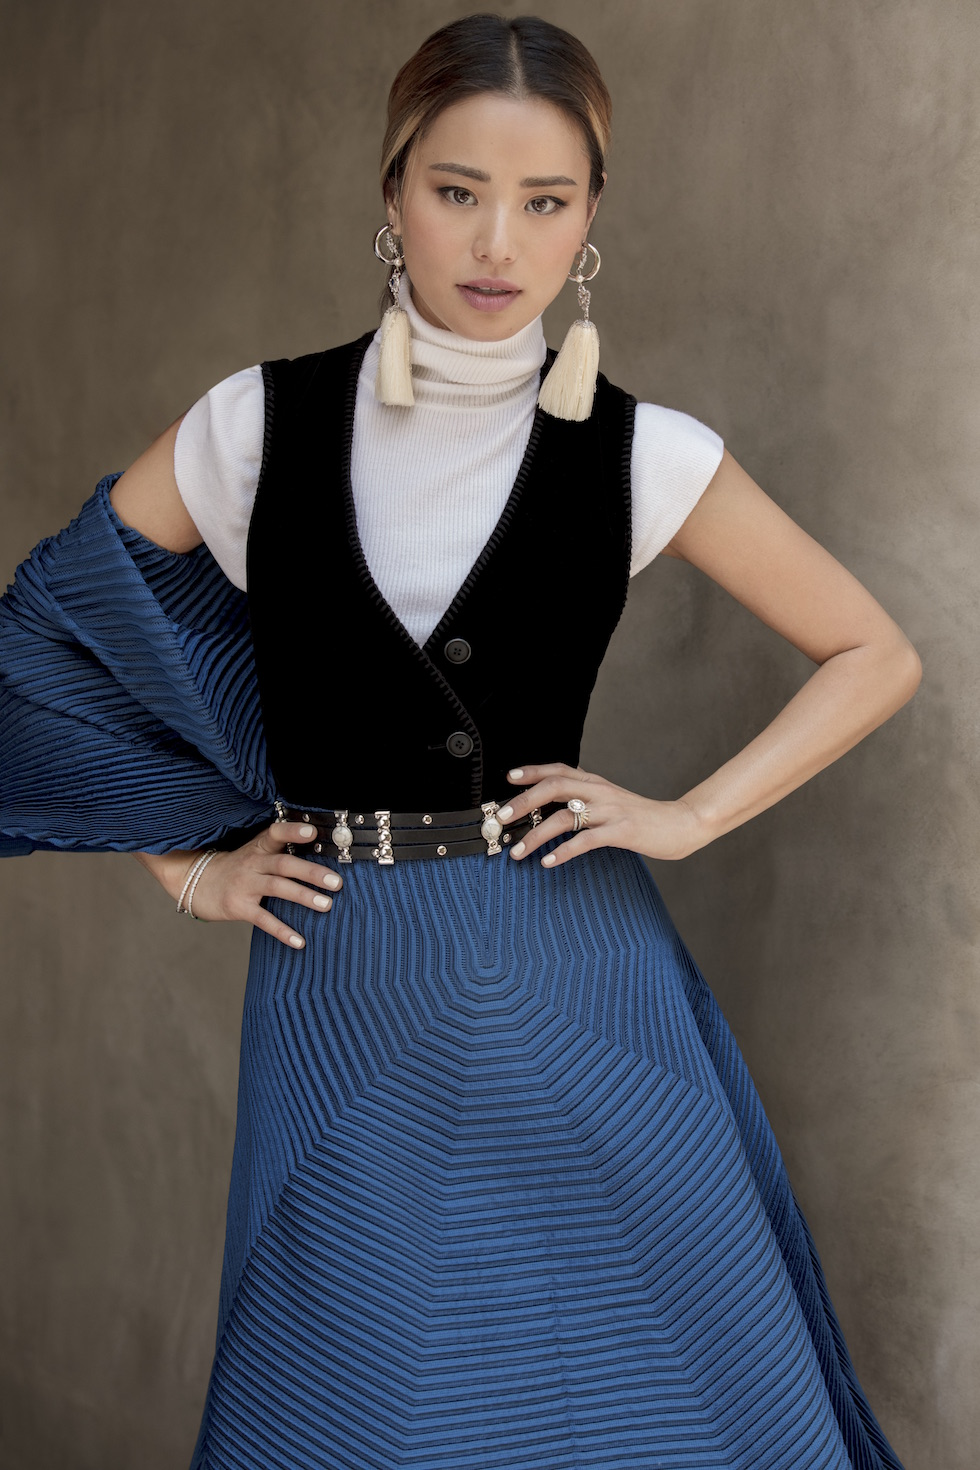 Chung wears an Issey Miyake skirt and shawl, A.L.C top, Giorgio Armani vest, the stylist's personal belt, O2 by Oxygen White Tassel earrings, A.V Max silver joops, and a Dana Rebecca White gold bracelet.